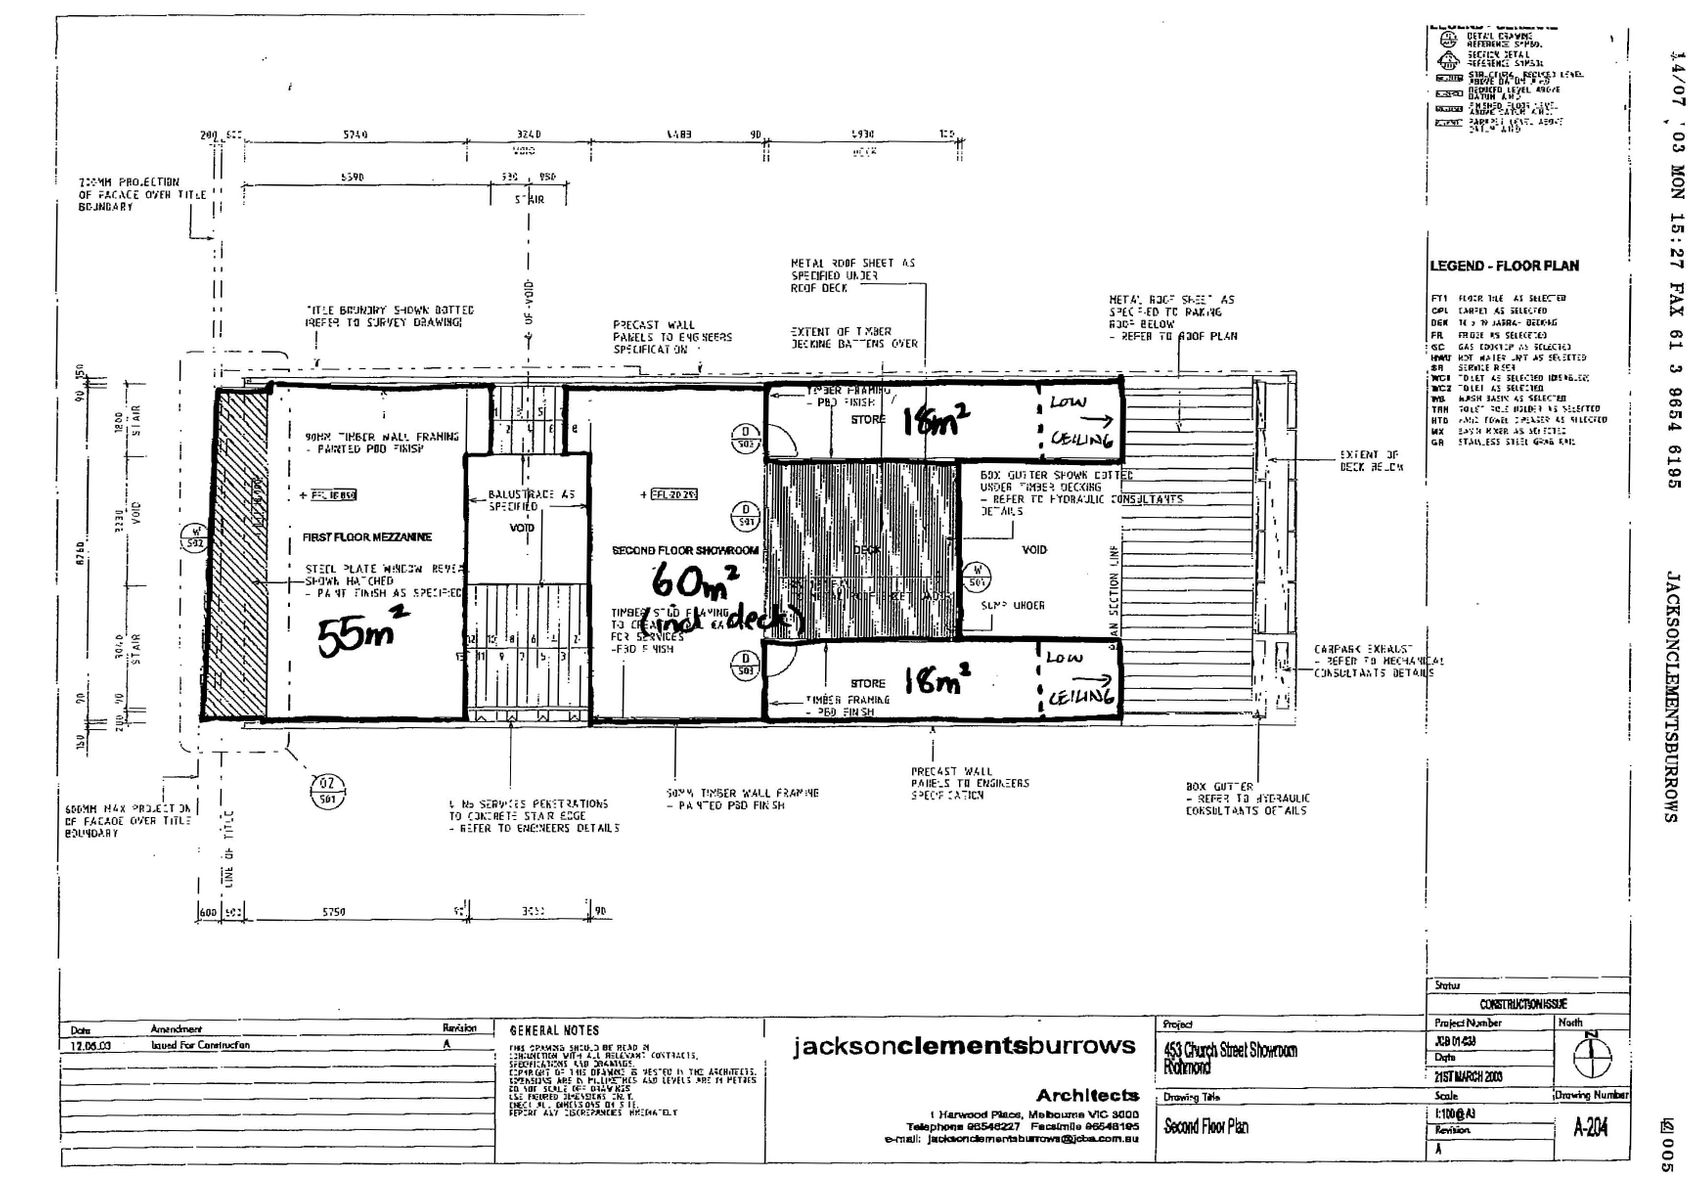 Building Plans Page 3 Second Floor